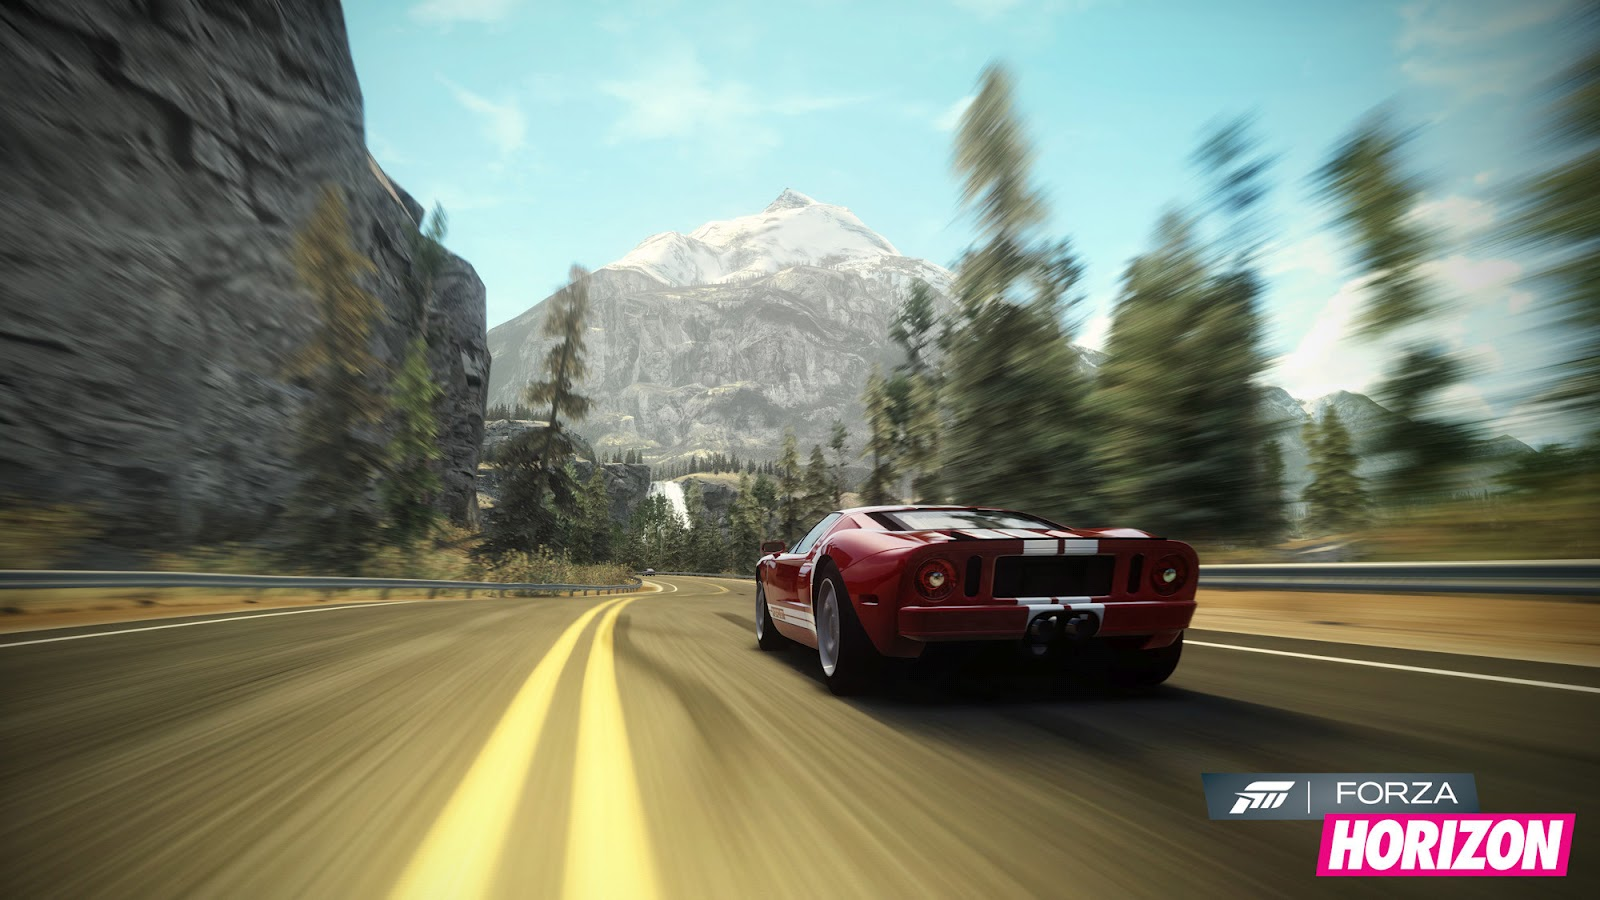 Forza Horizon HD & Widescreen Wallpaper 0.526986217318447